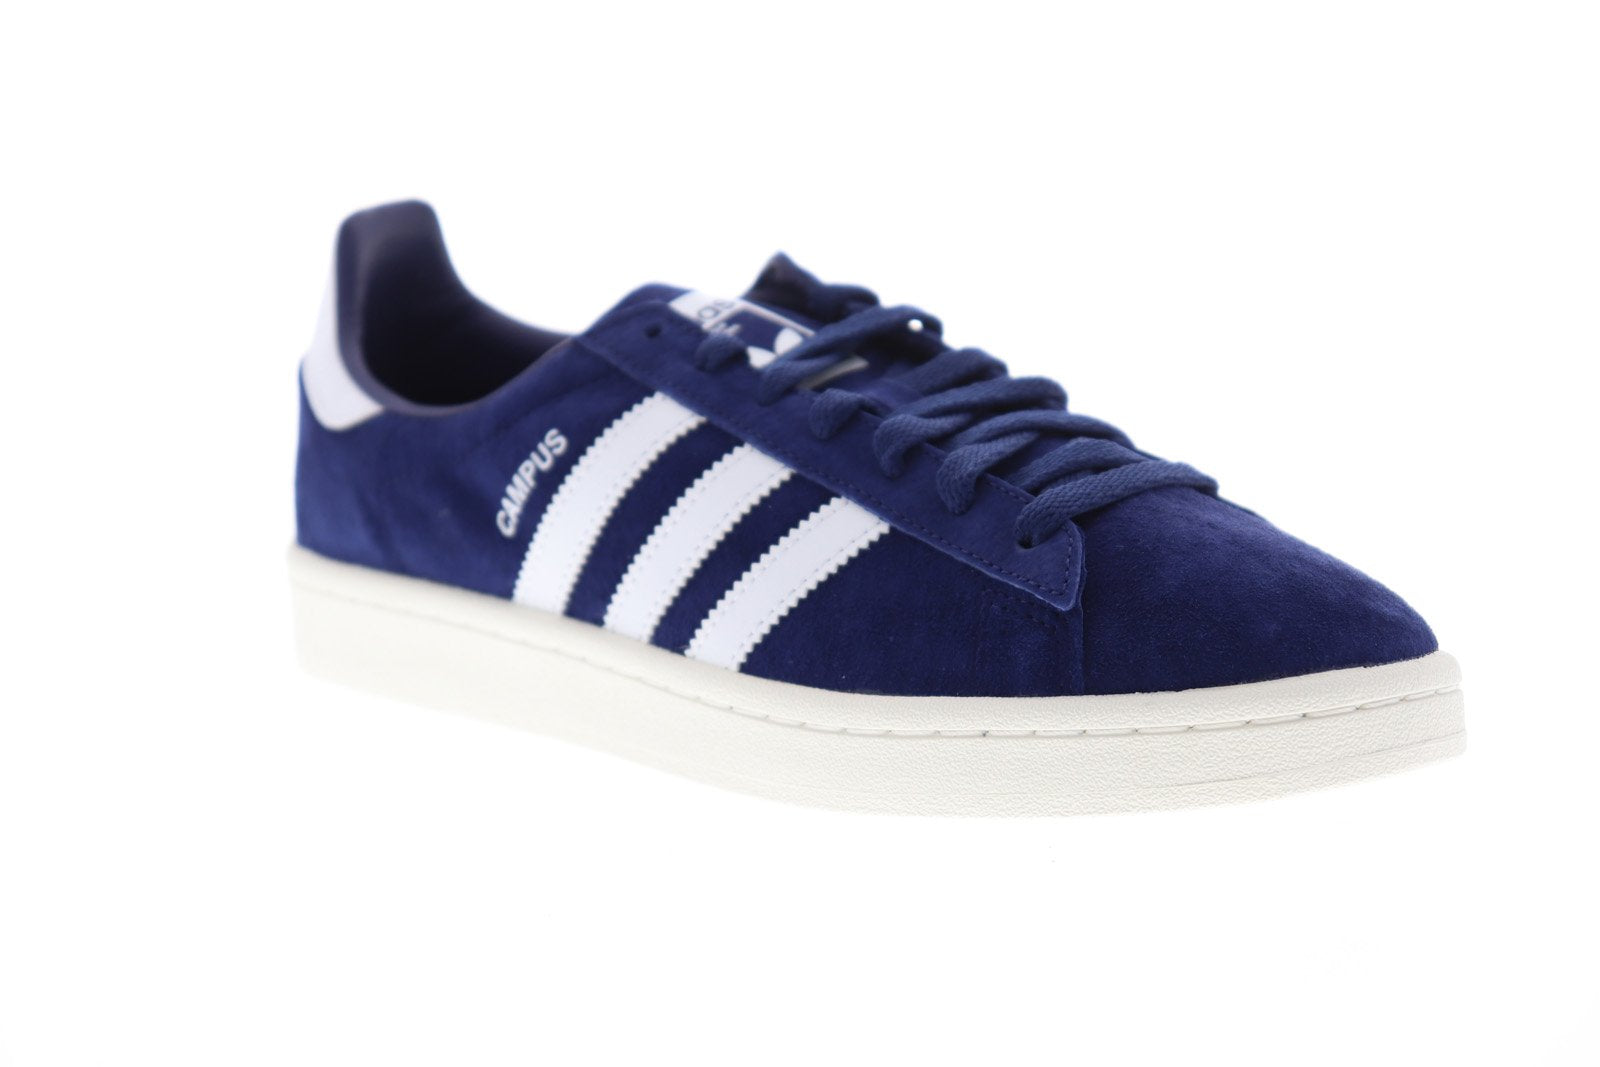 new lower prices low cost new images of Adidas Campus Mens Blue Suede Low Top Lace Up Sneakers Shoes